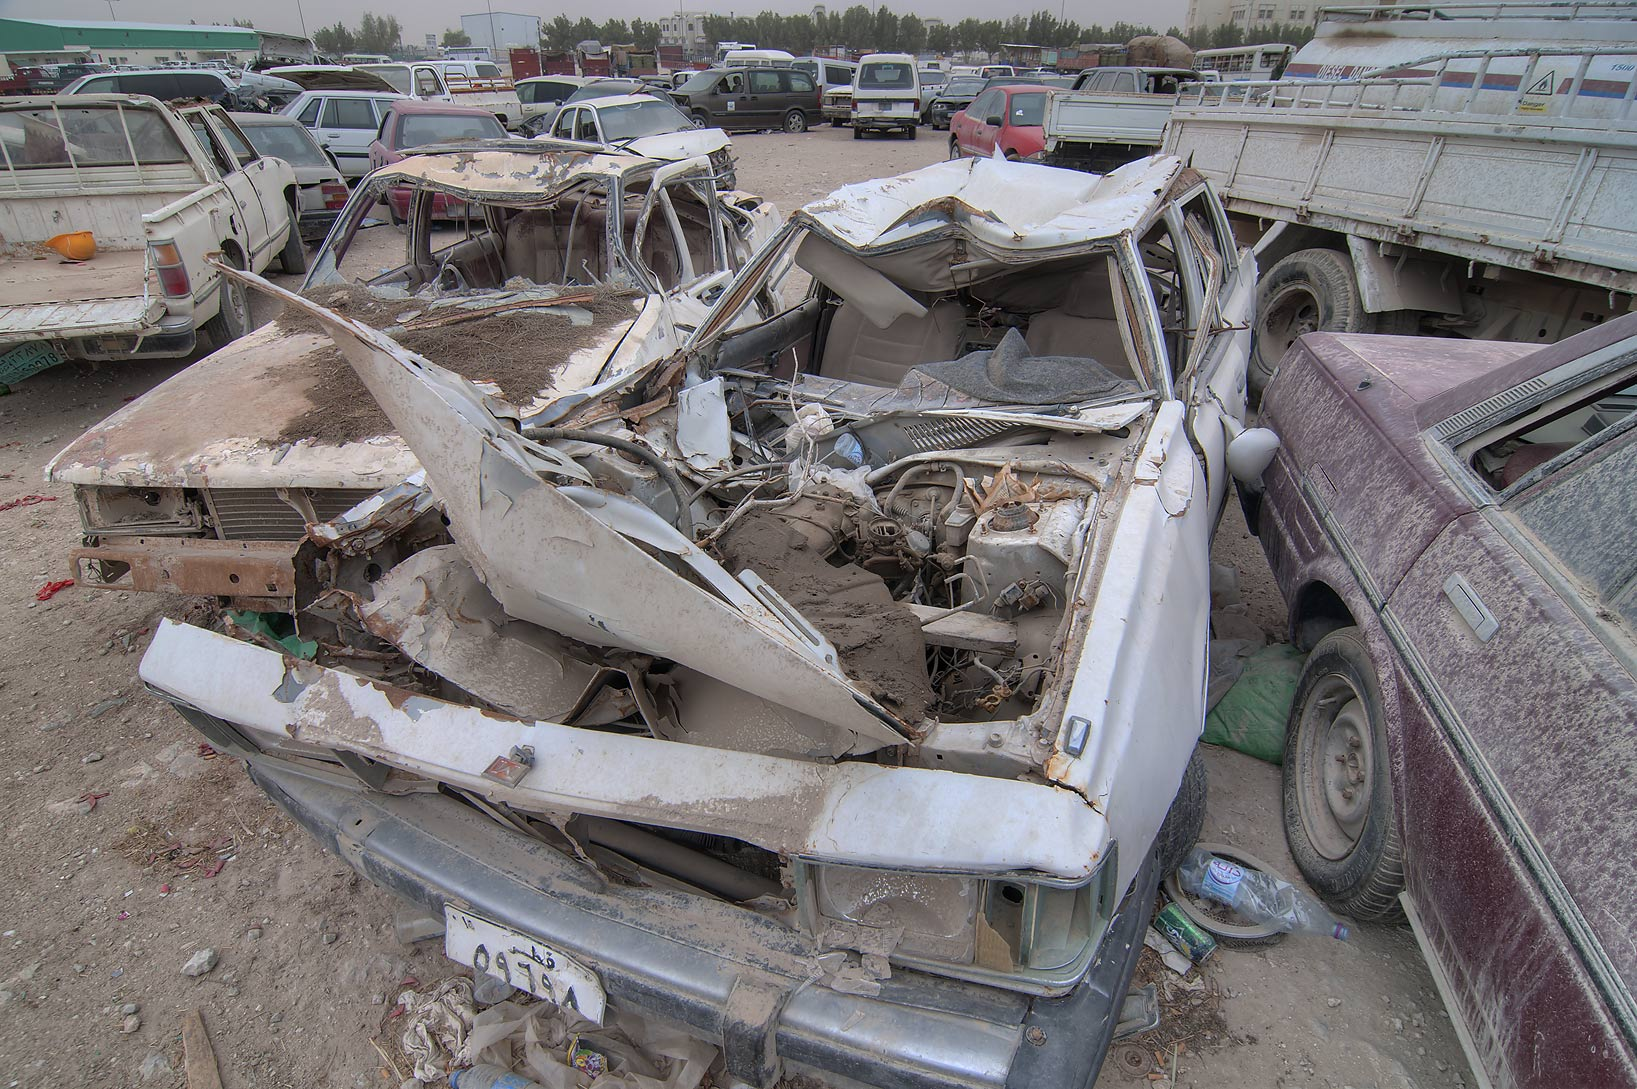 Dusty wrecked cars near Al Mamoura Traffic Police...Wholesale Markets area. Doha, Qatar